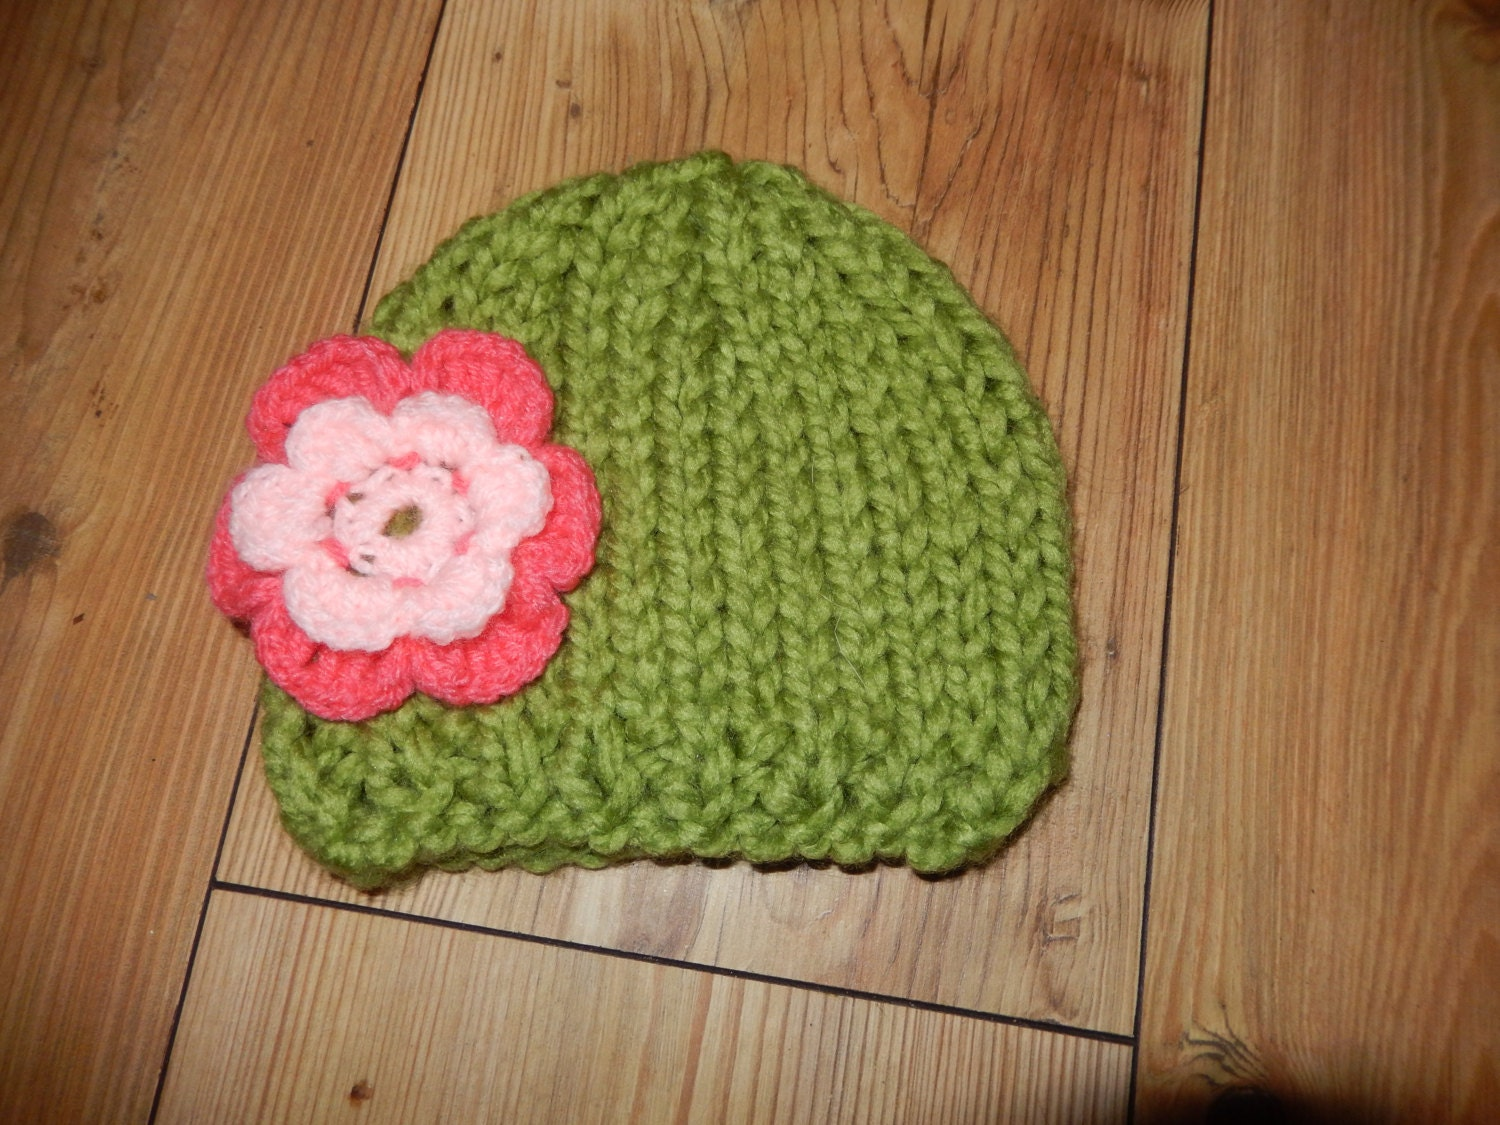 cute hand knitted chunky green baby hat with a pink flower 03 month